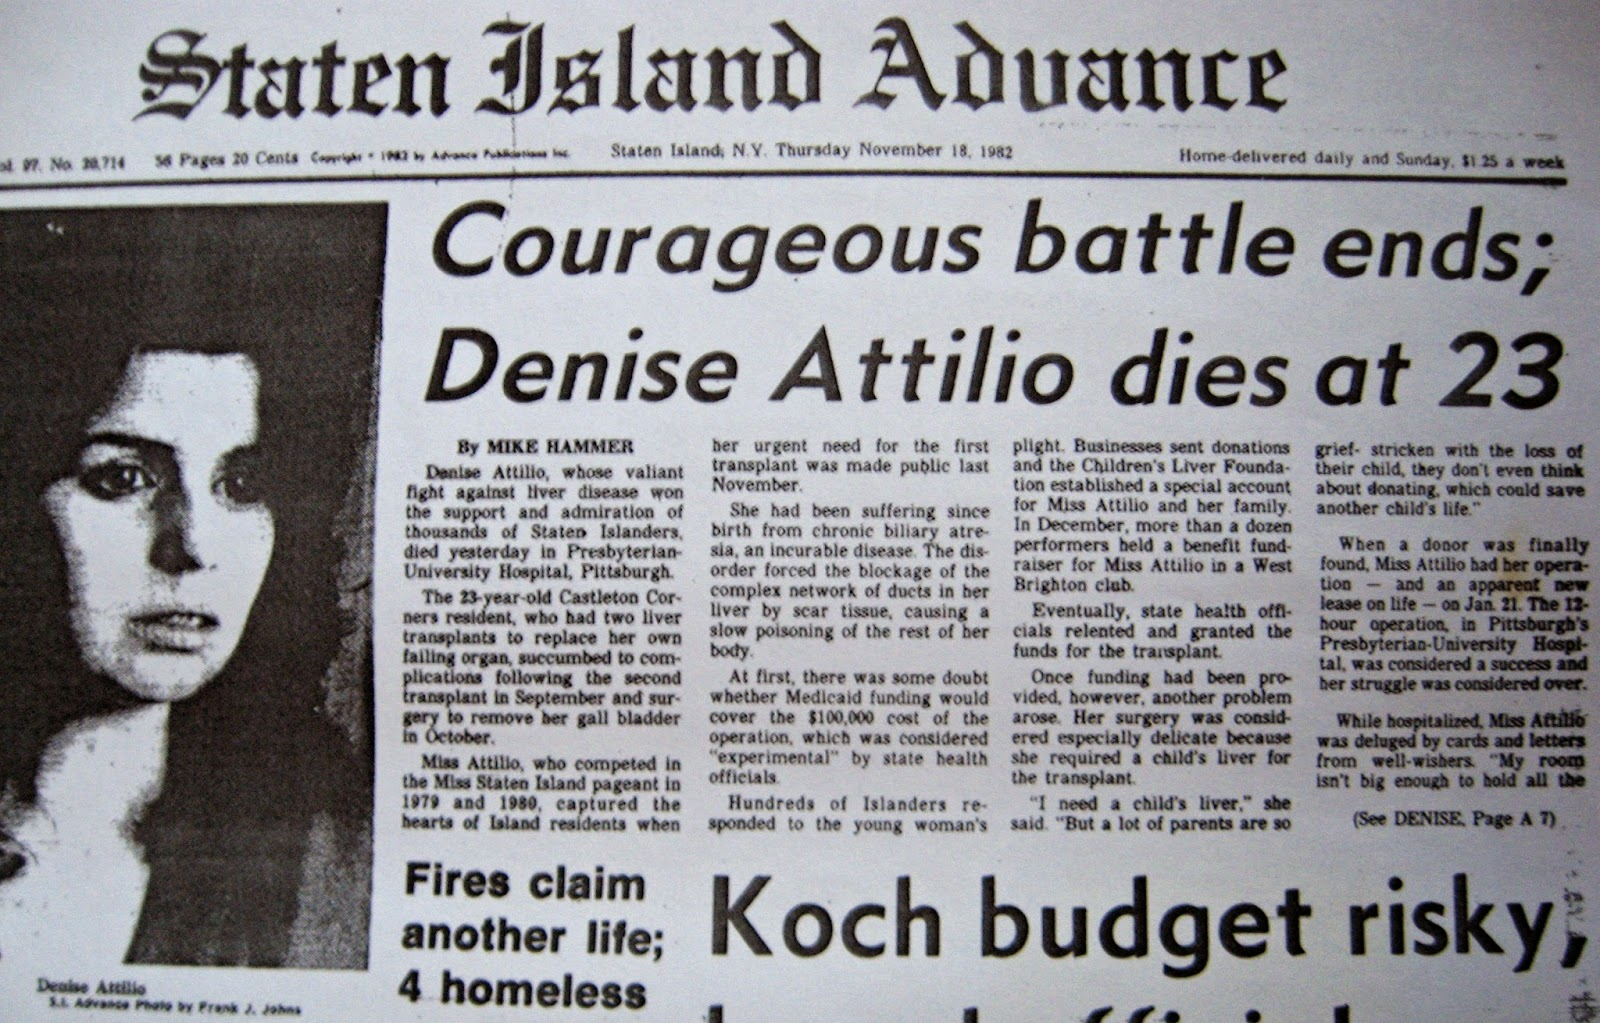 Denise Attilio leaves us at 23... Staten Island Advance article November 18, 1982